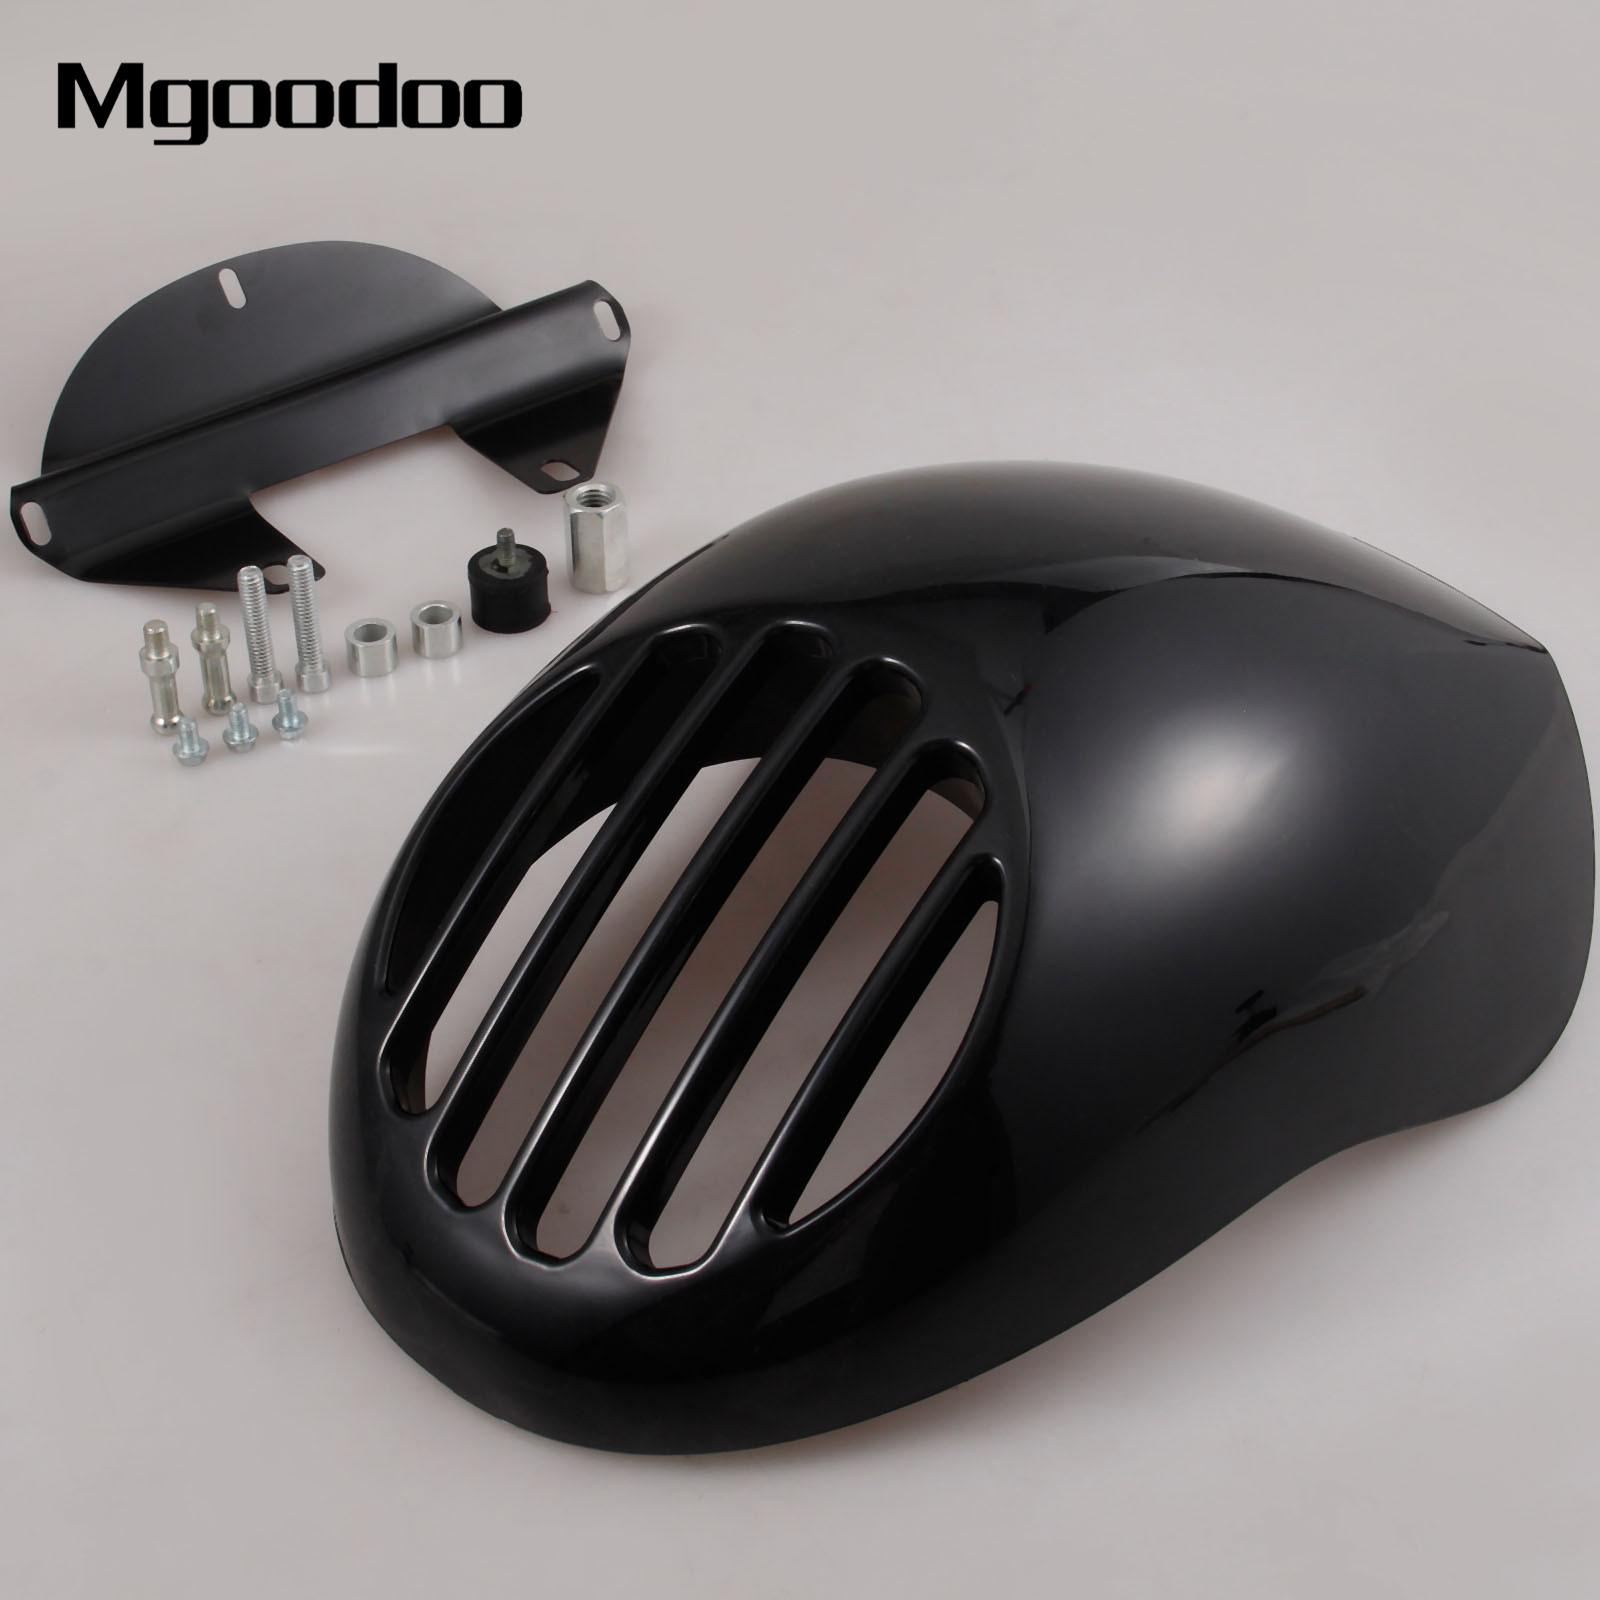 Mgoodoo Grill Headlight Fairing Mask Motorcycle Front Cowl Fork Mount For Harley Sportster Dyna XL 883 FXRS Motorbike Parts red 5 3 4 motor vehicle headlight fairing bezel mask front visor cowl cover for harley cafe racer sportster dyna xl 883 3757